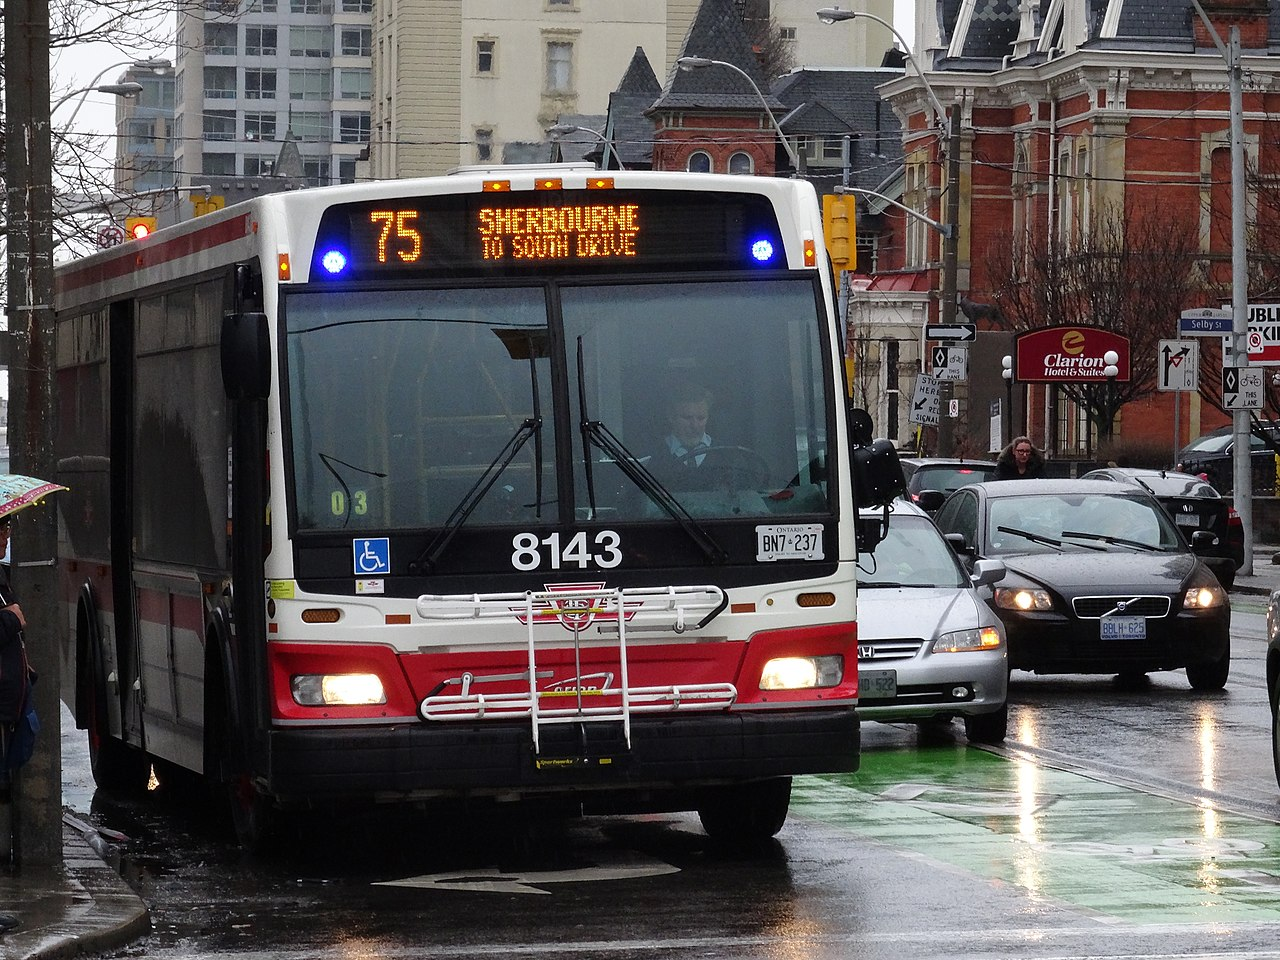 File:TTC bus 8143 at Sherbourne and Bloor, 2014 12 17 (3) (16047130412).jpg - Wikimedia Commons